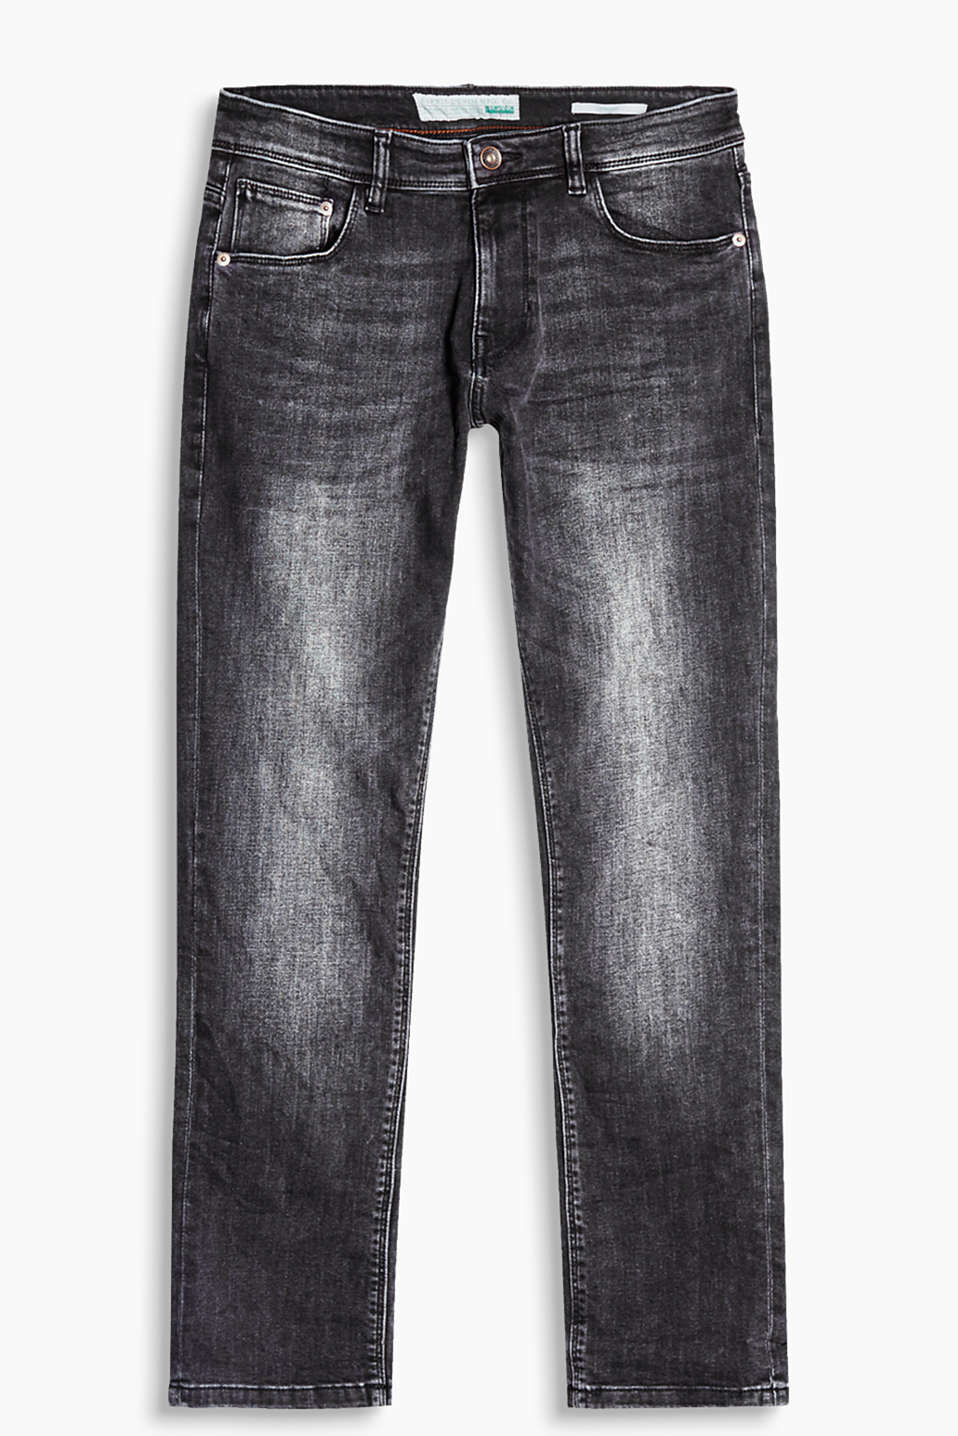 Mit Used Washed-Effekten: 5-Pocket-Jeans aus Organic Cotton, mit hohem Stretch-Anteil